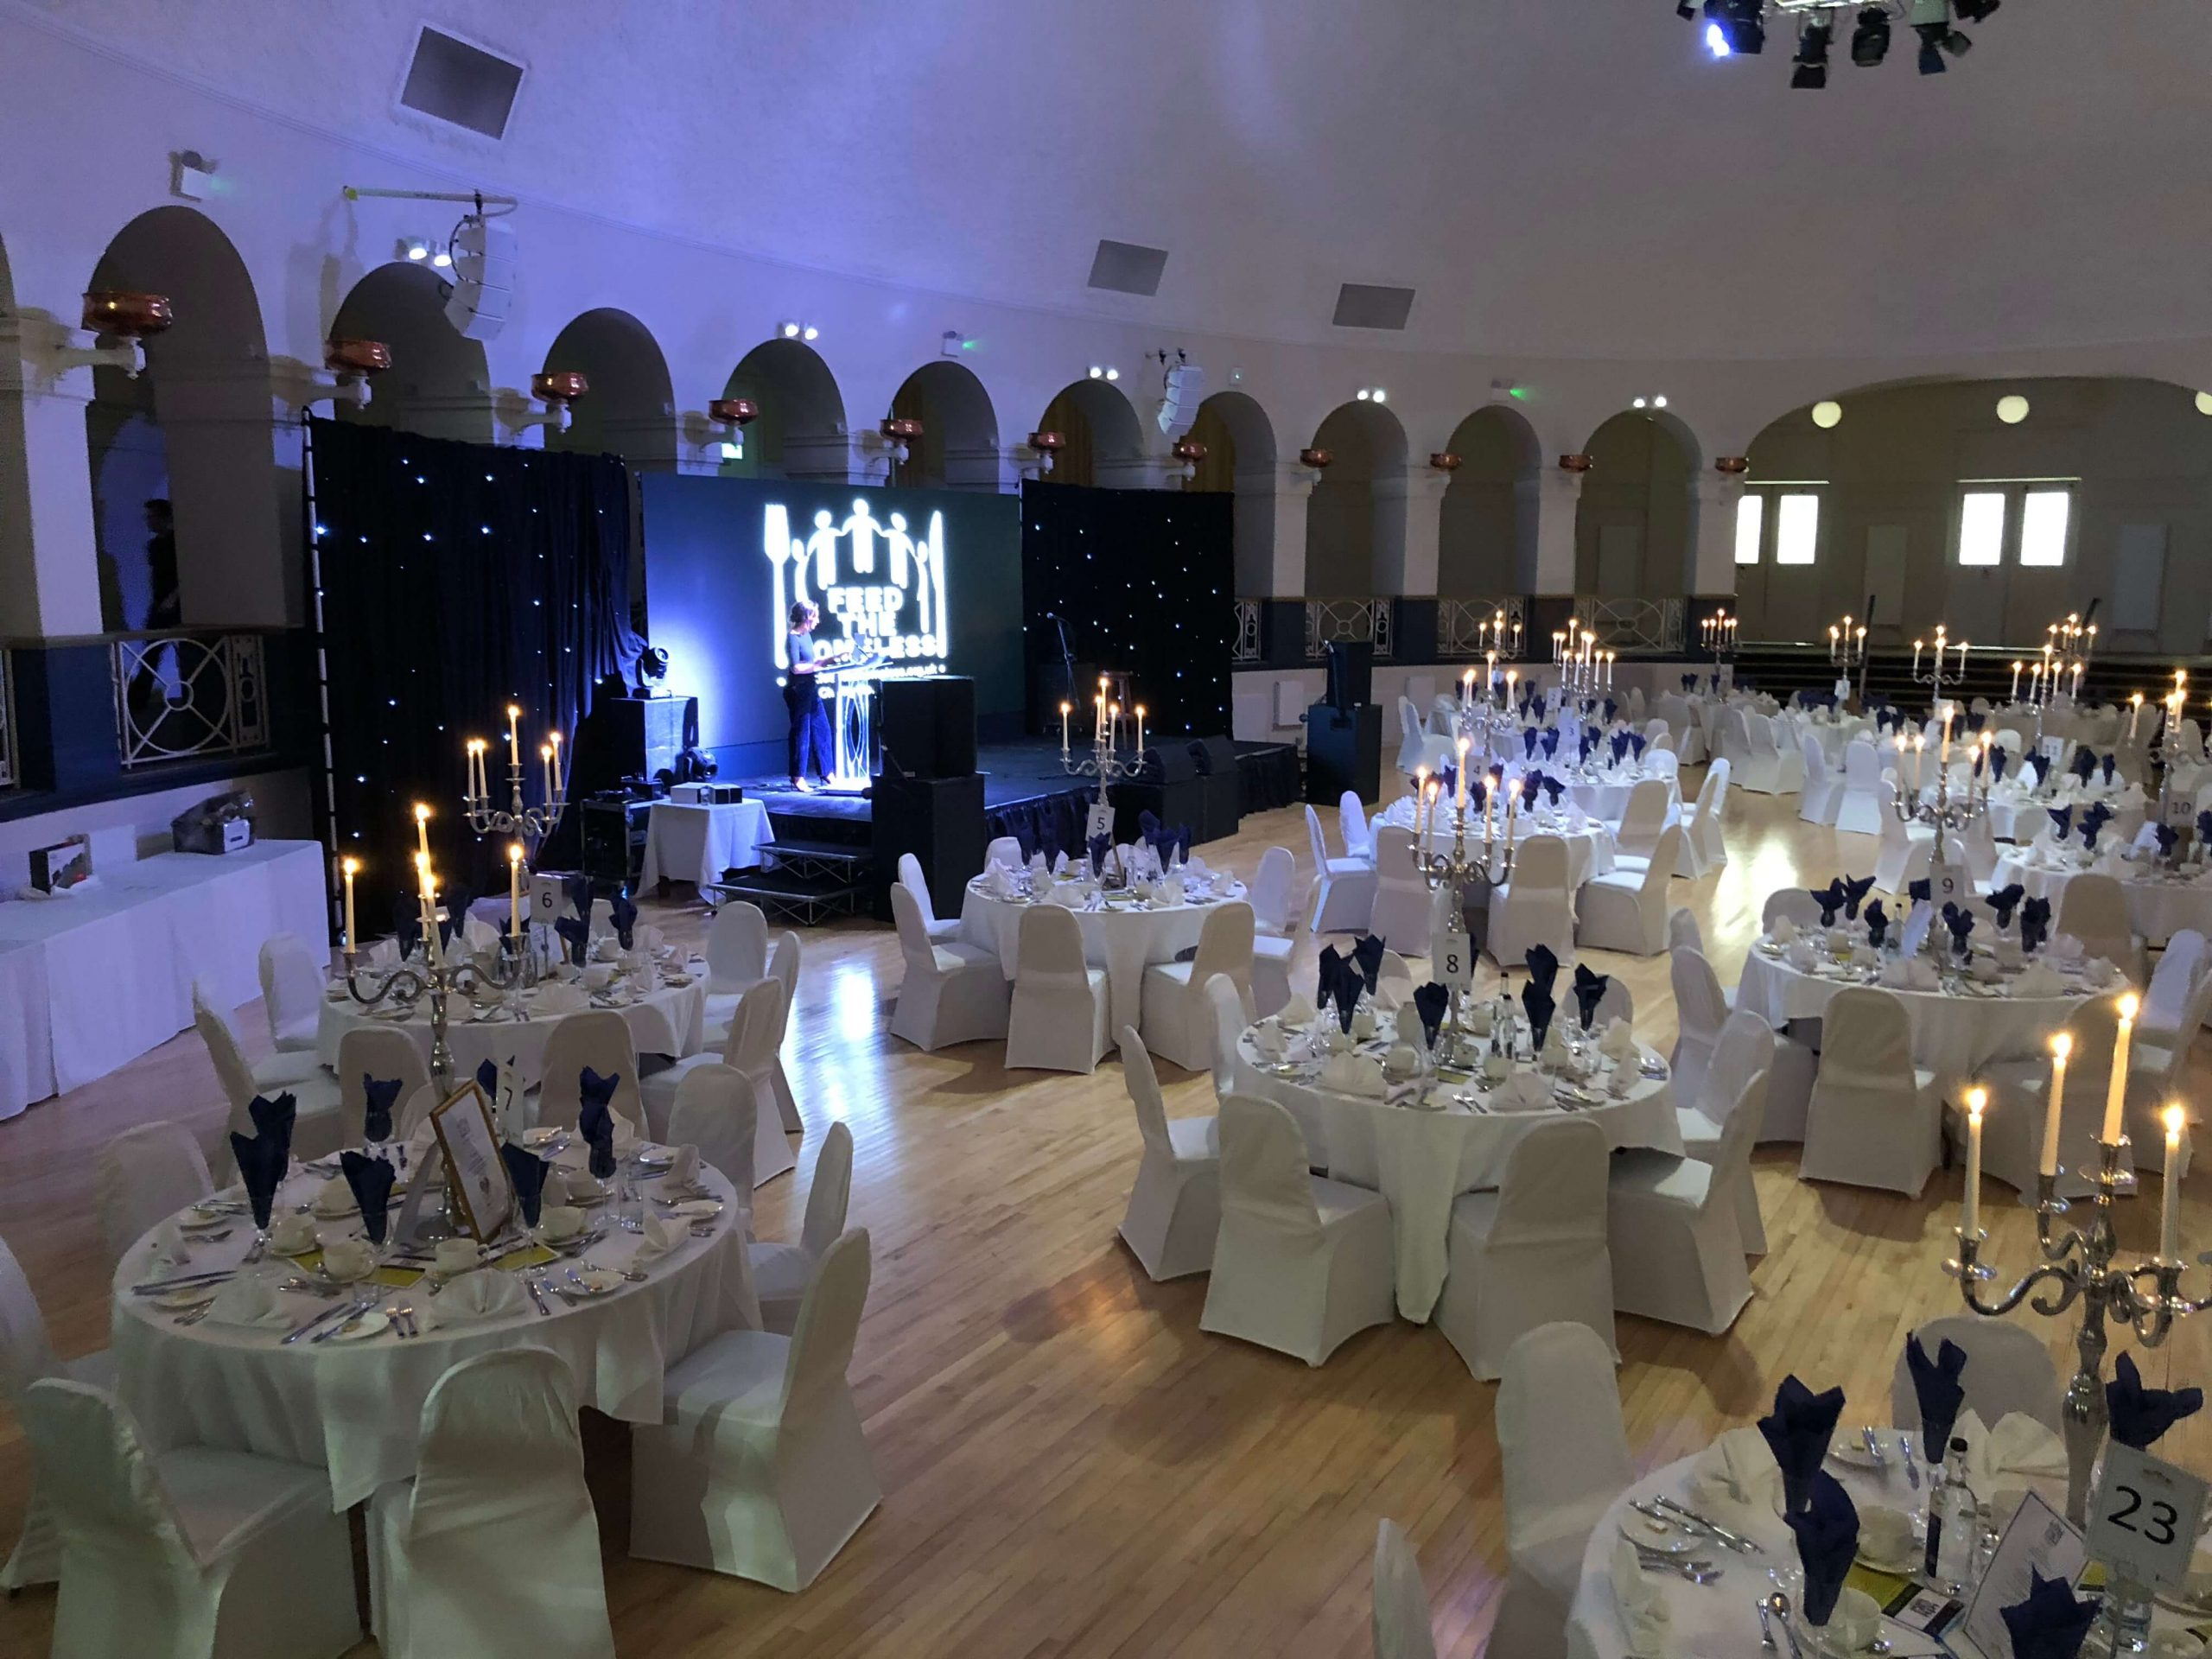 UKCC Event Managing & Catering for the Feed The Homeless Charity Gala Dinner